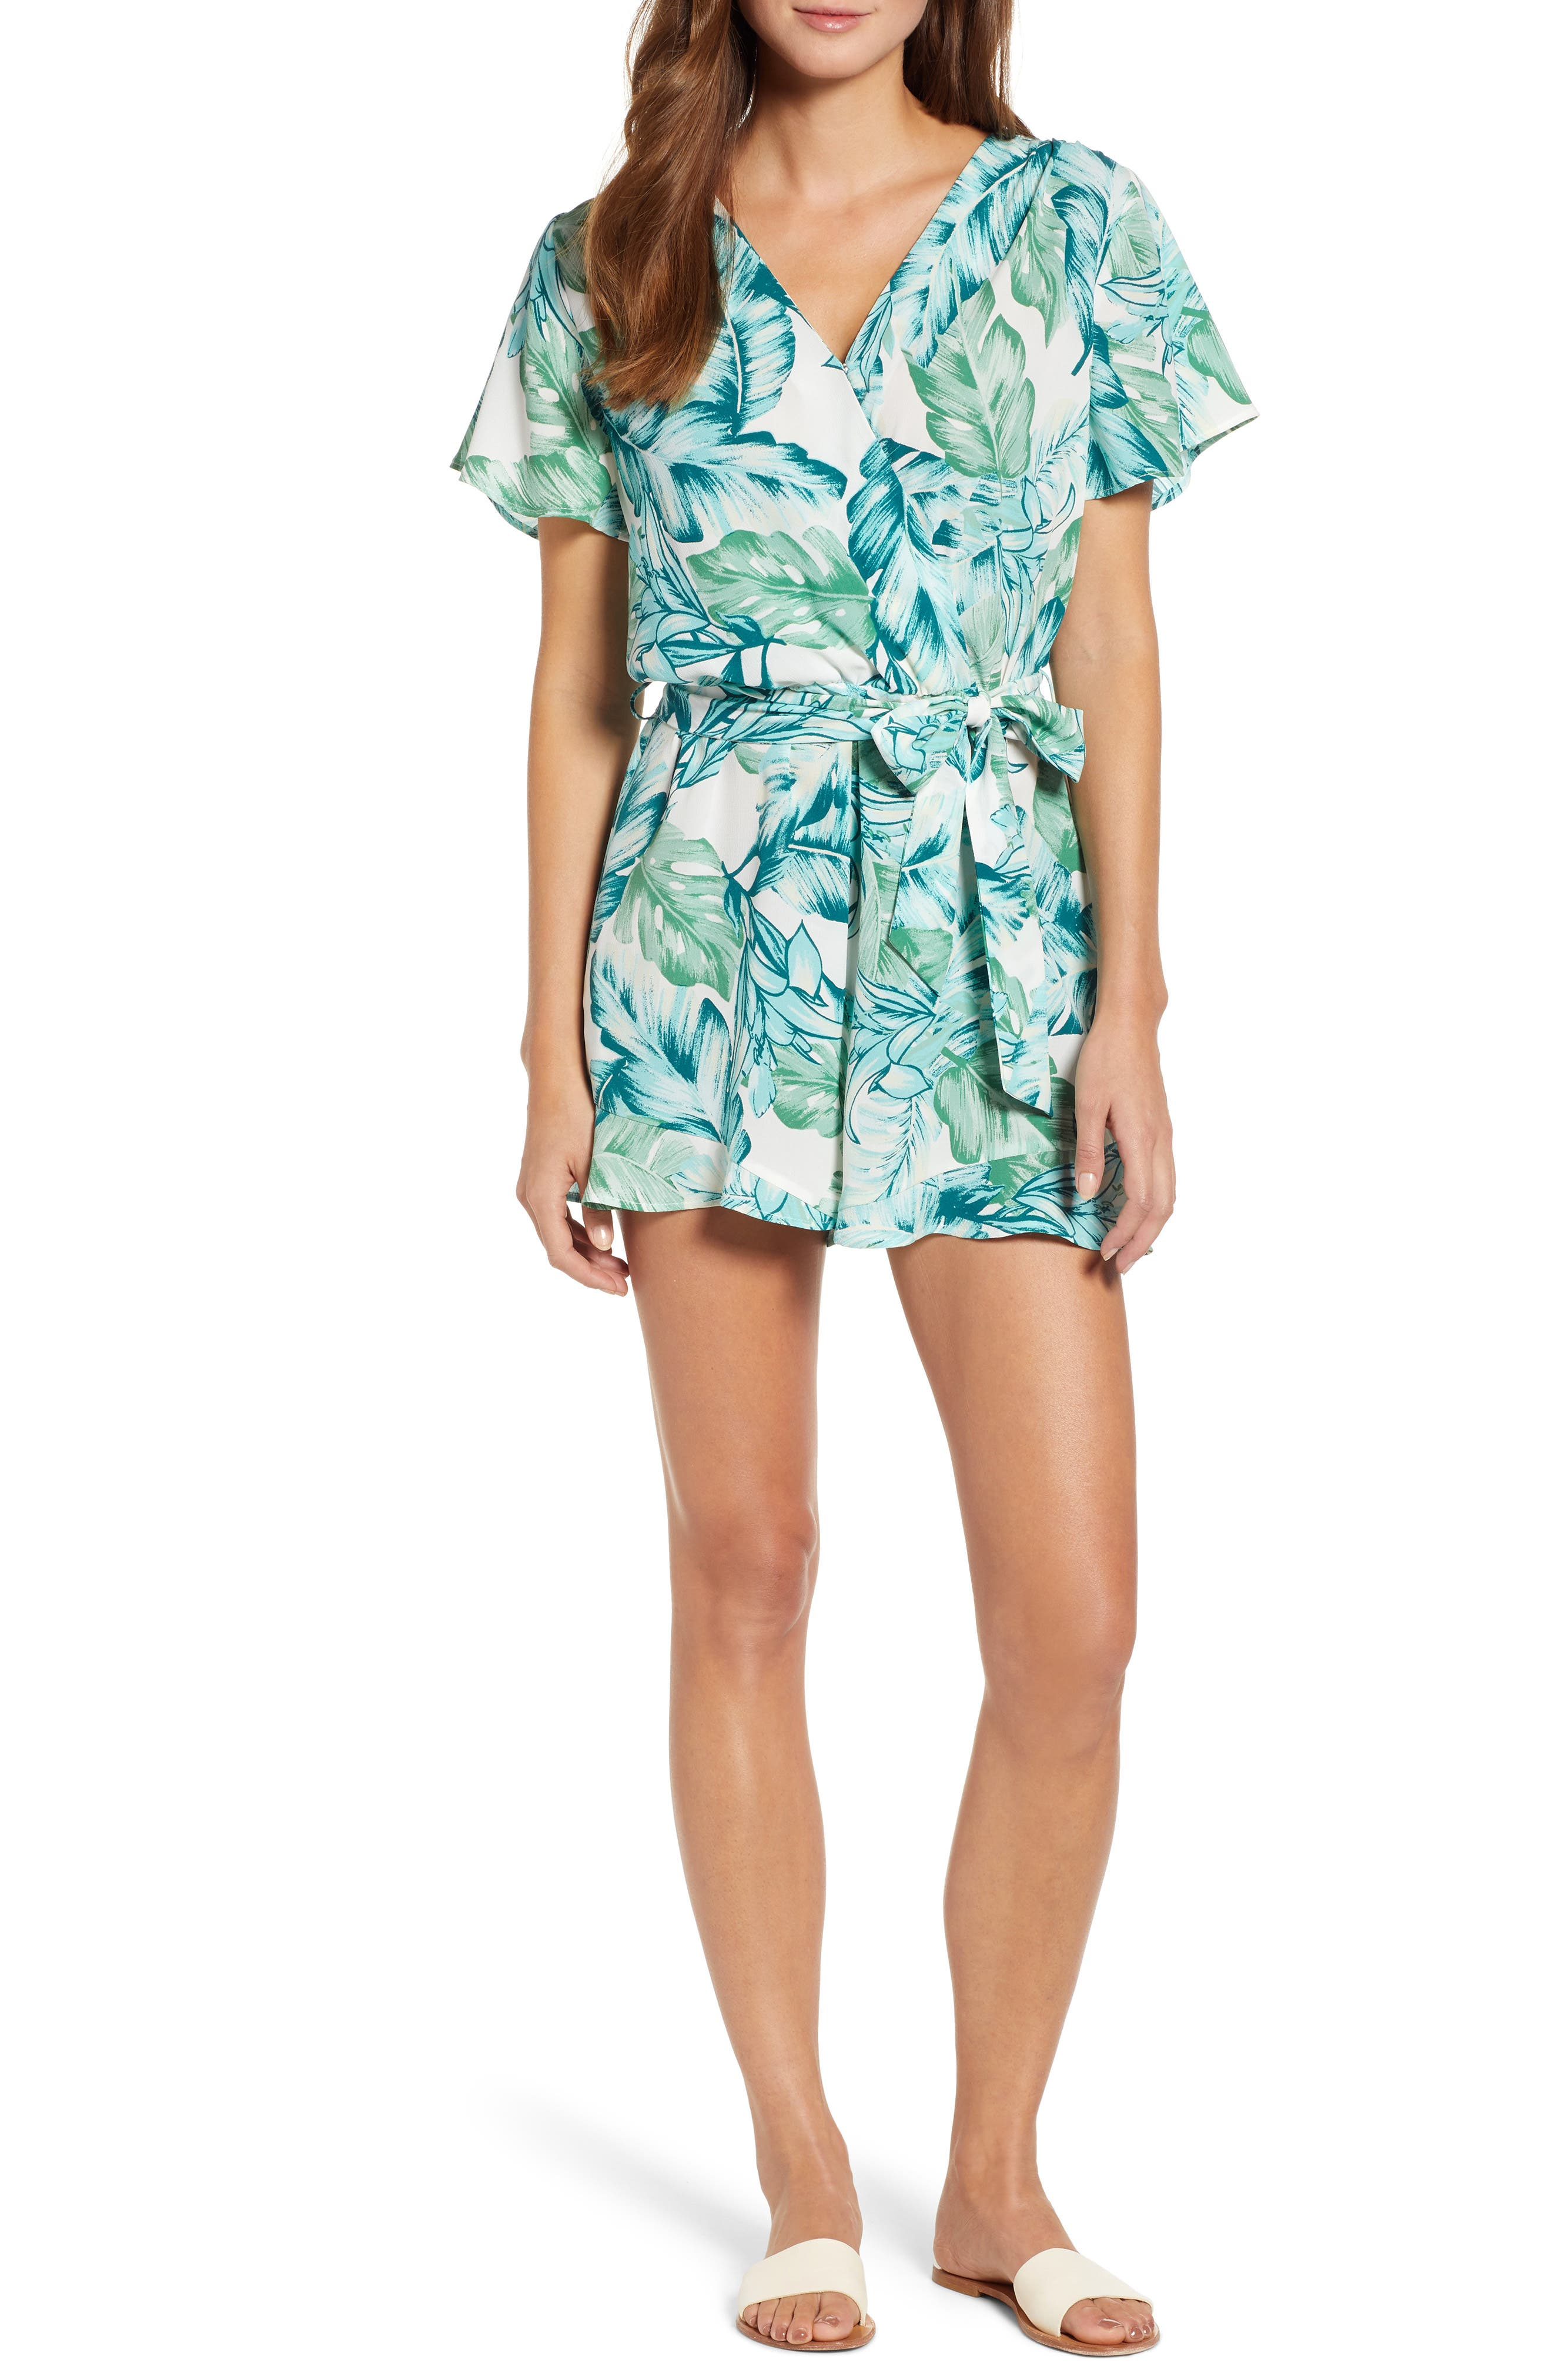 GIBSON, x Hi Sugarplum! Catalina Ruffle Hem Romper, Main thumbnail 1, color, PALM